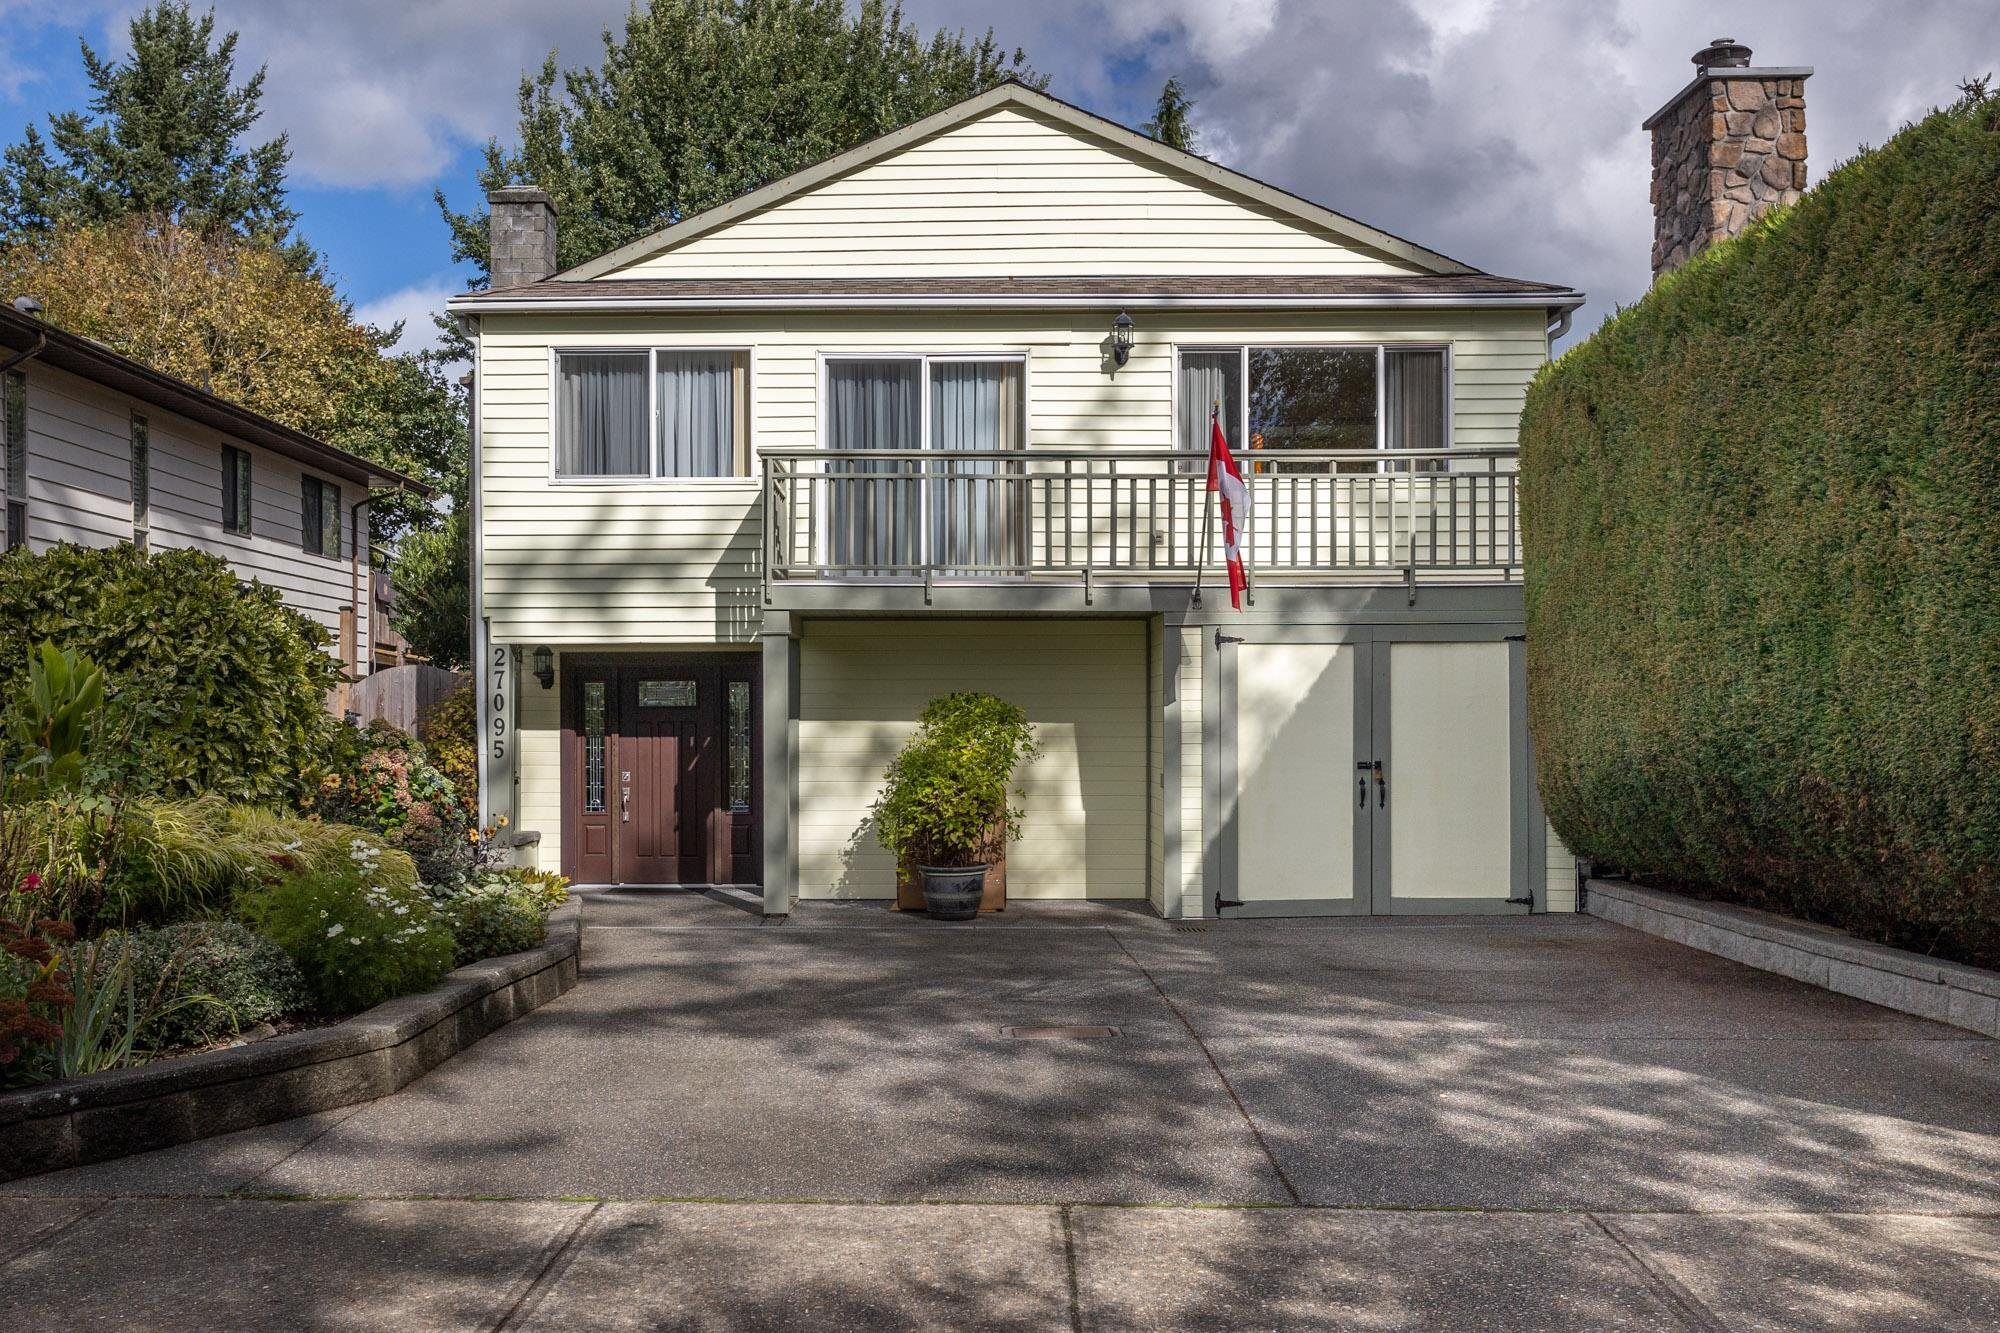 Main Photo: 27095 33B Avenue in Langley: Aldergrove Langley House for sale : MLS®# R2624070